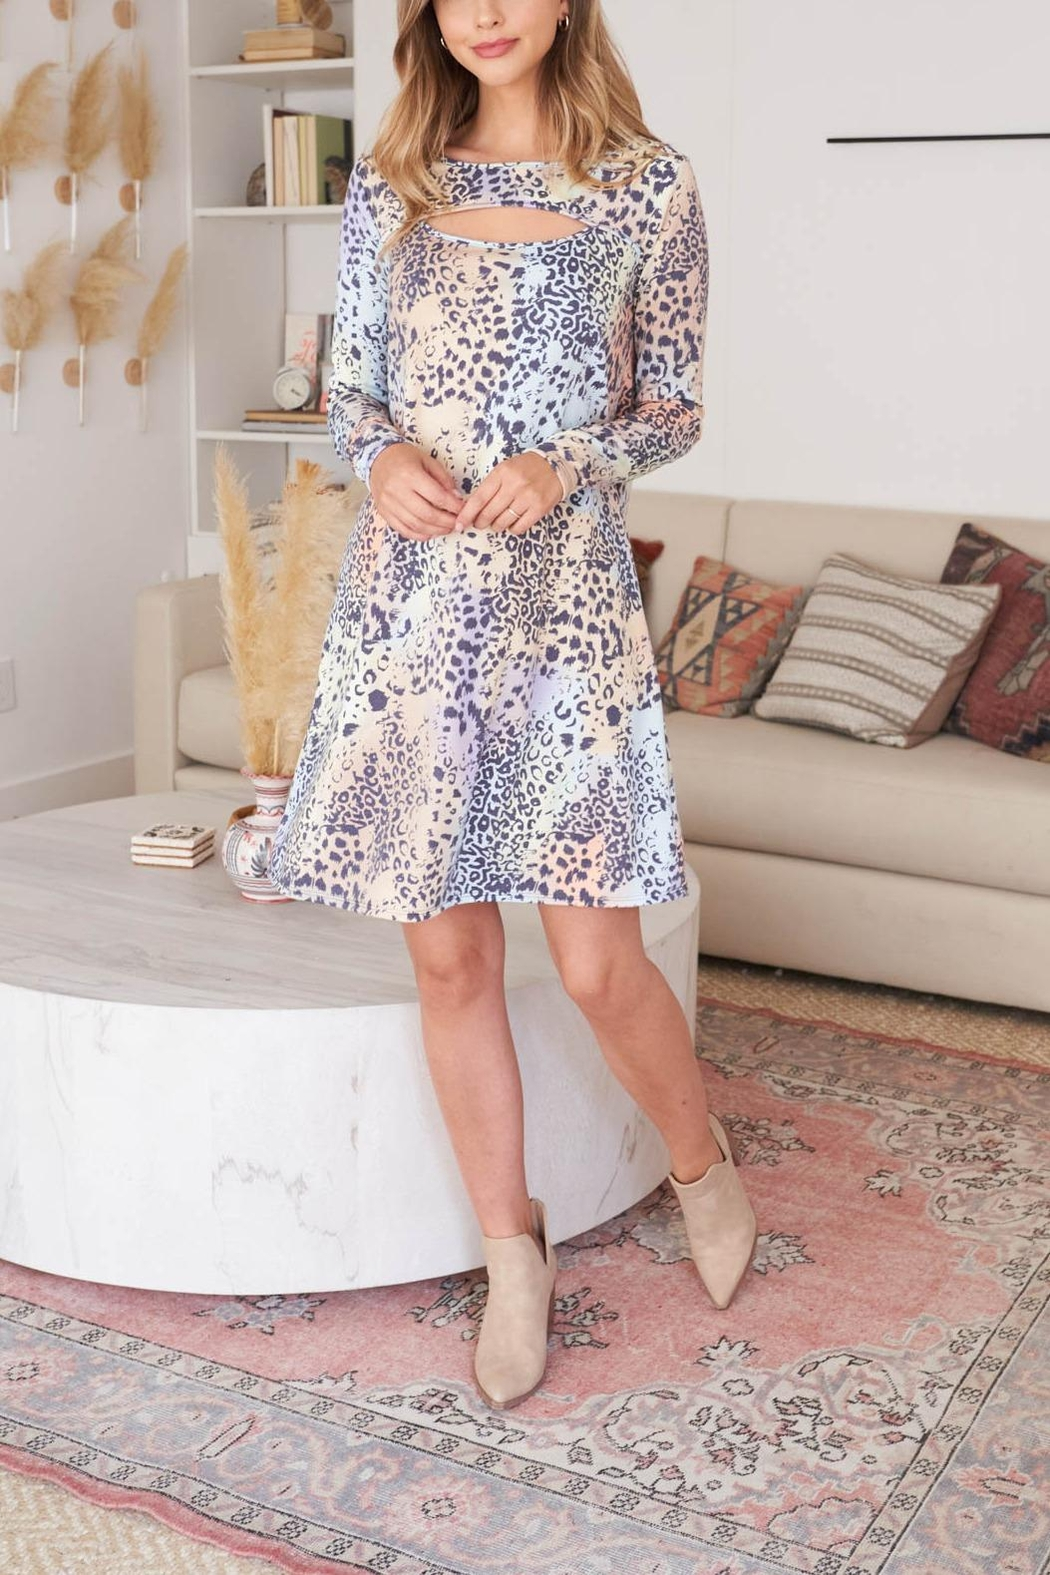 Riah Fashion Cut-Out-Front-Long-Sleeve-Leopard-Dress-Camel - Front Full Image